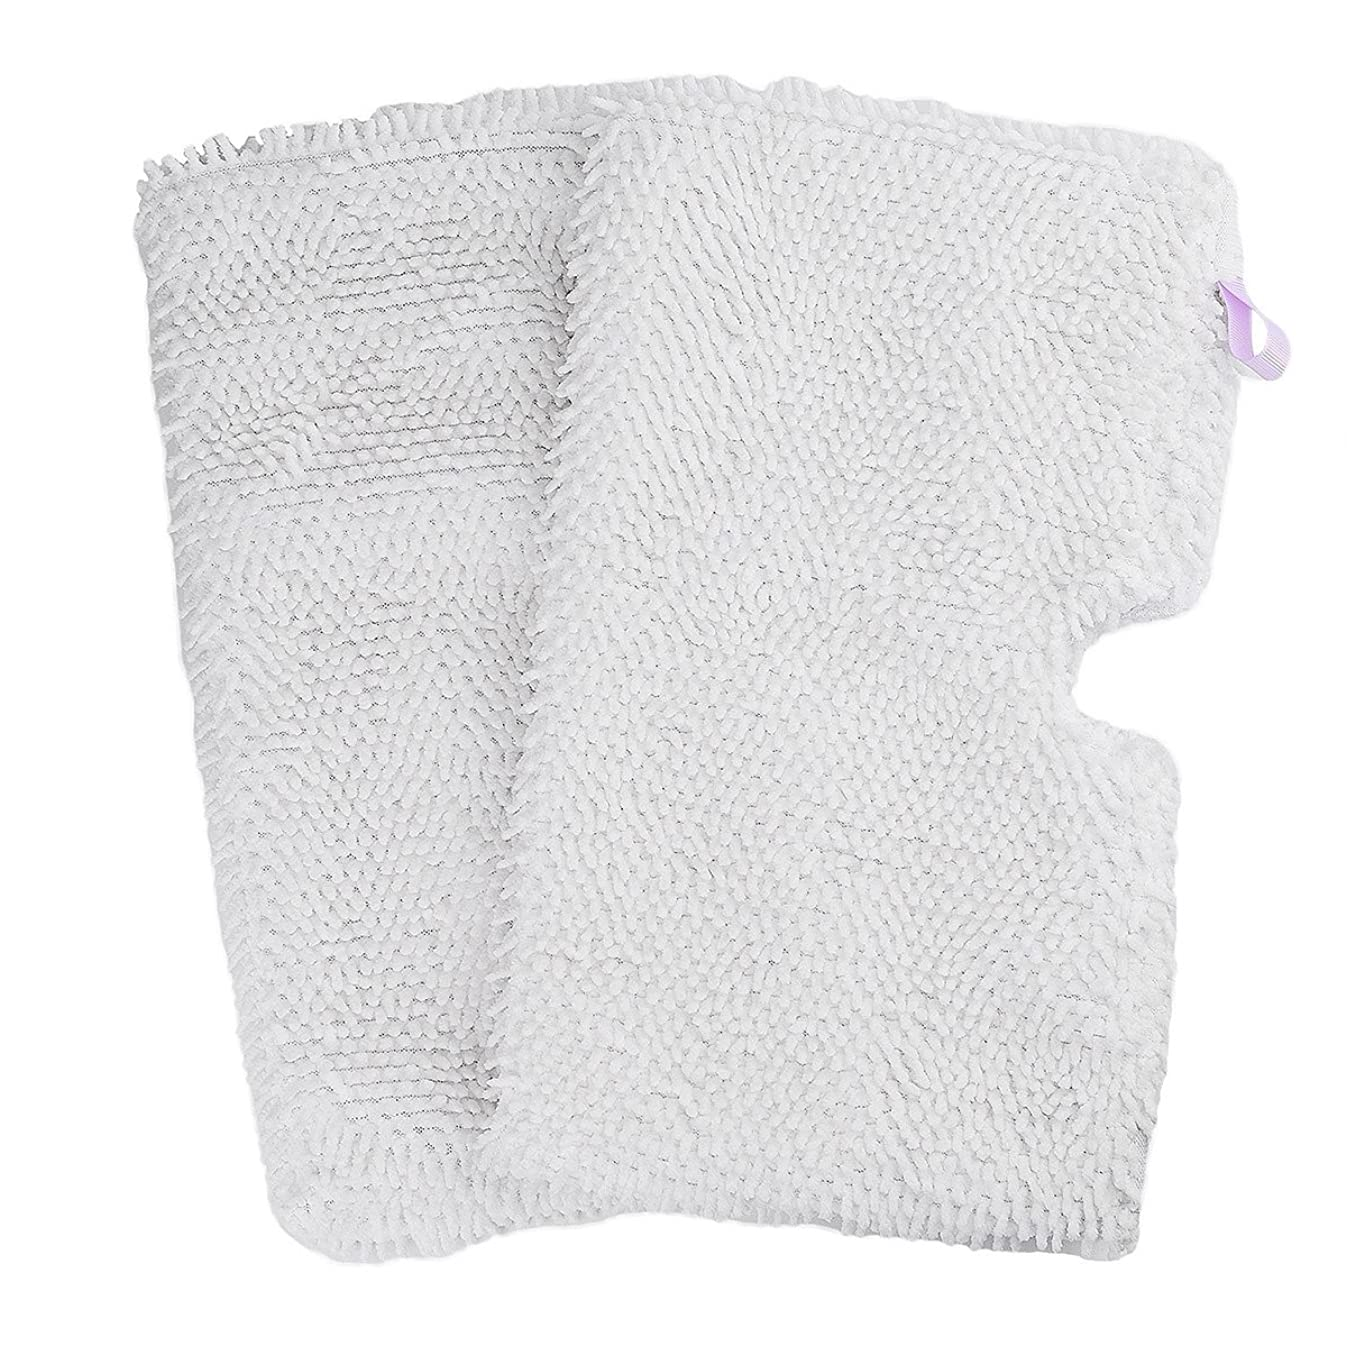 Flammi 2 Pack Replacement Microfiber Steam Mop Cleaning Pads Compatible for Shark Steam Pocket Mops S3500 Series S3501 S3601 S3550 S3901 S3801 SE450 S3801CO S3601D (White)